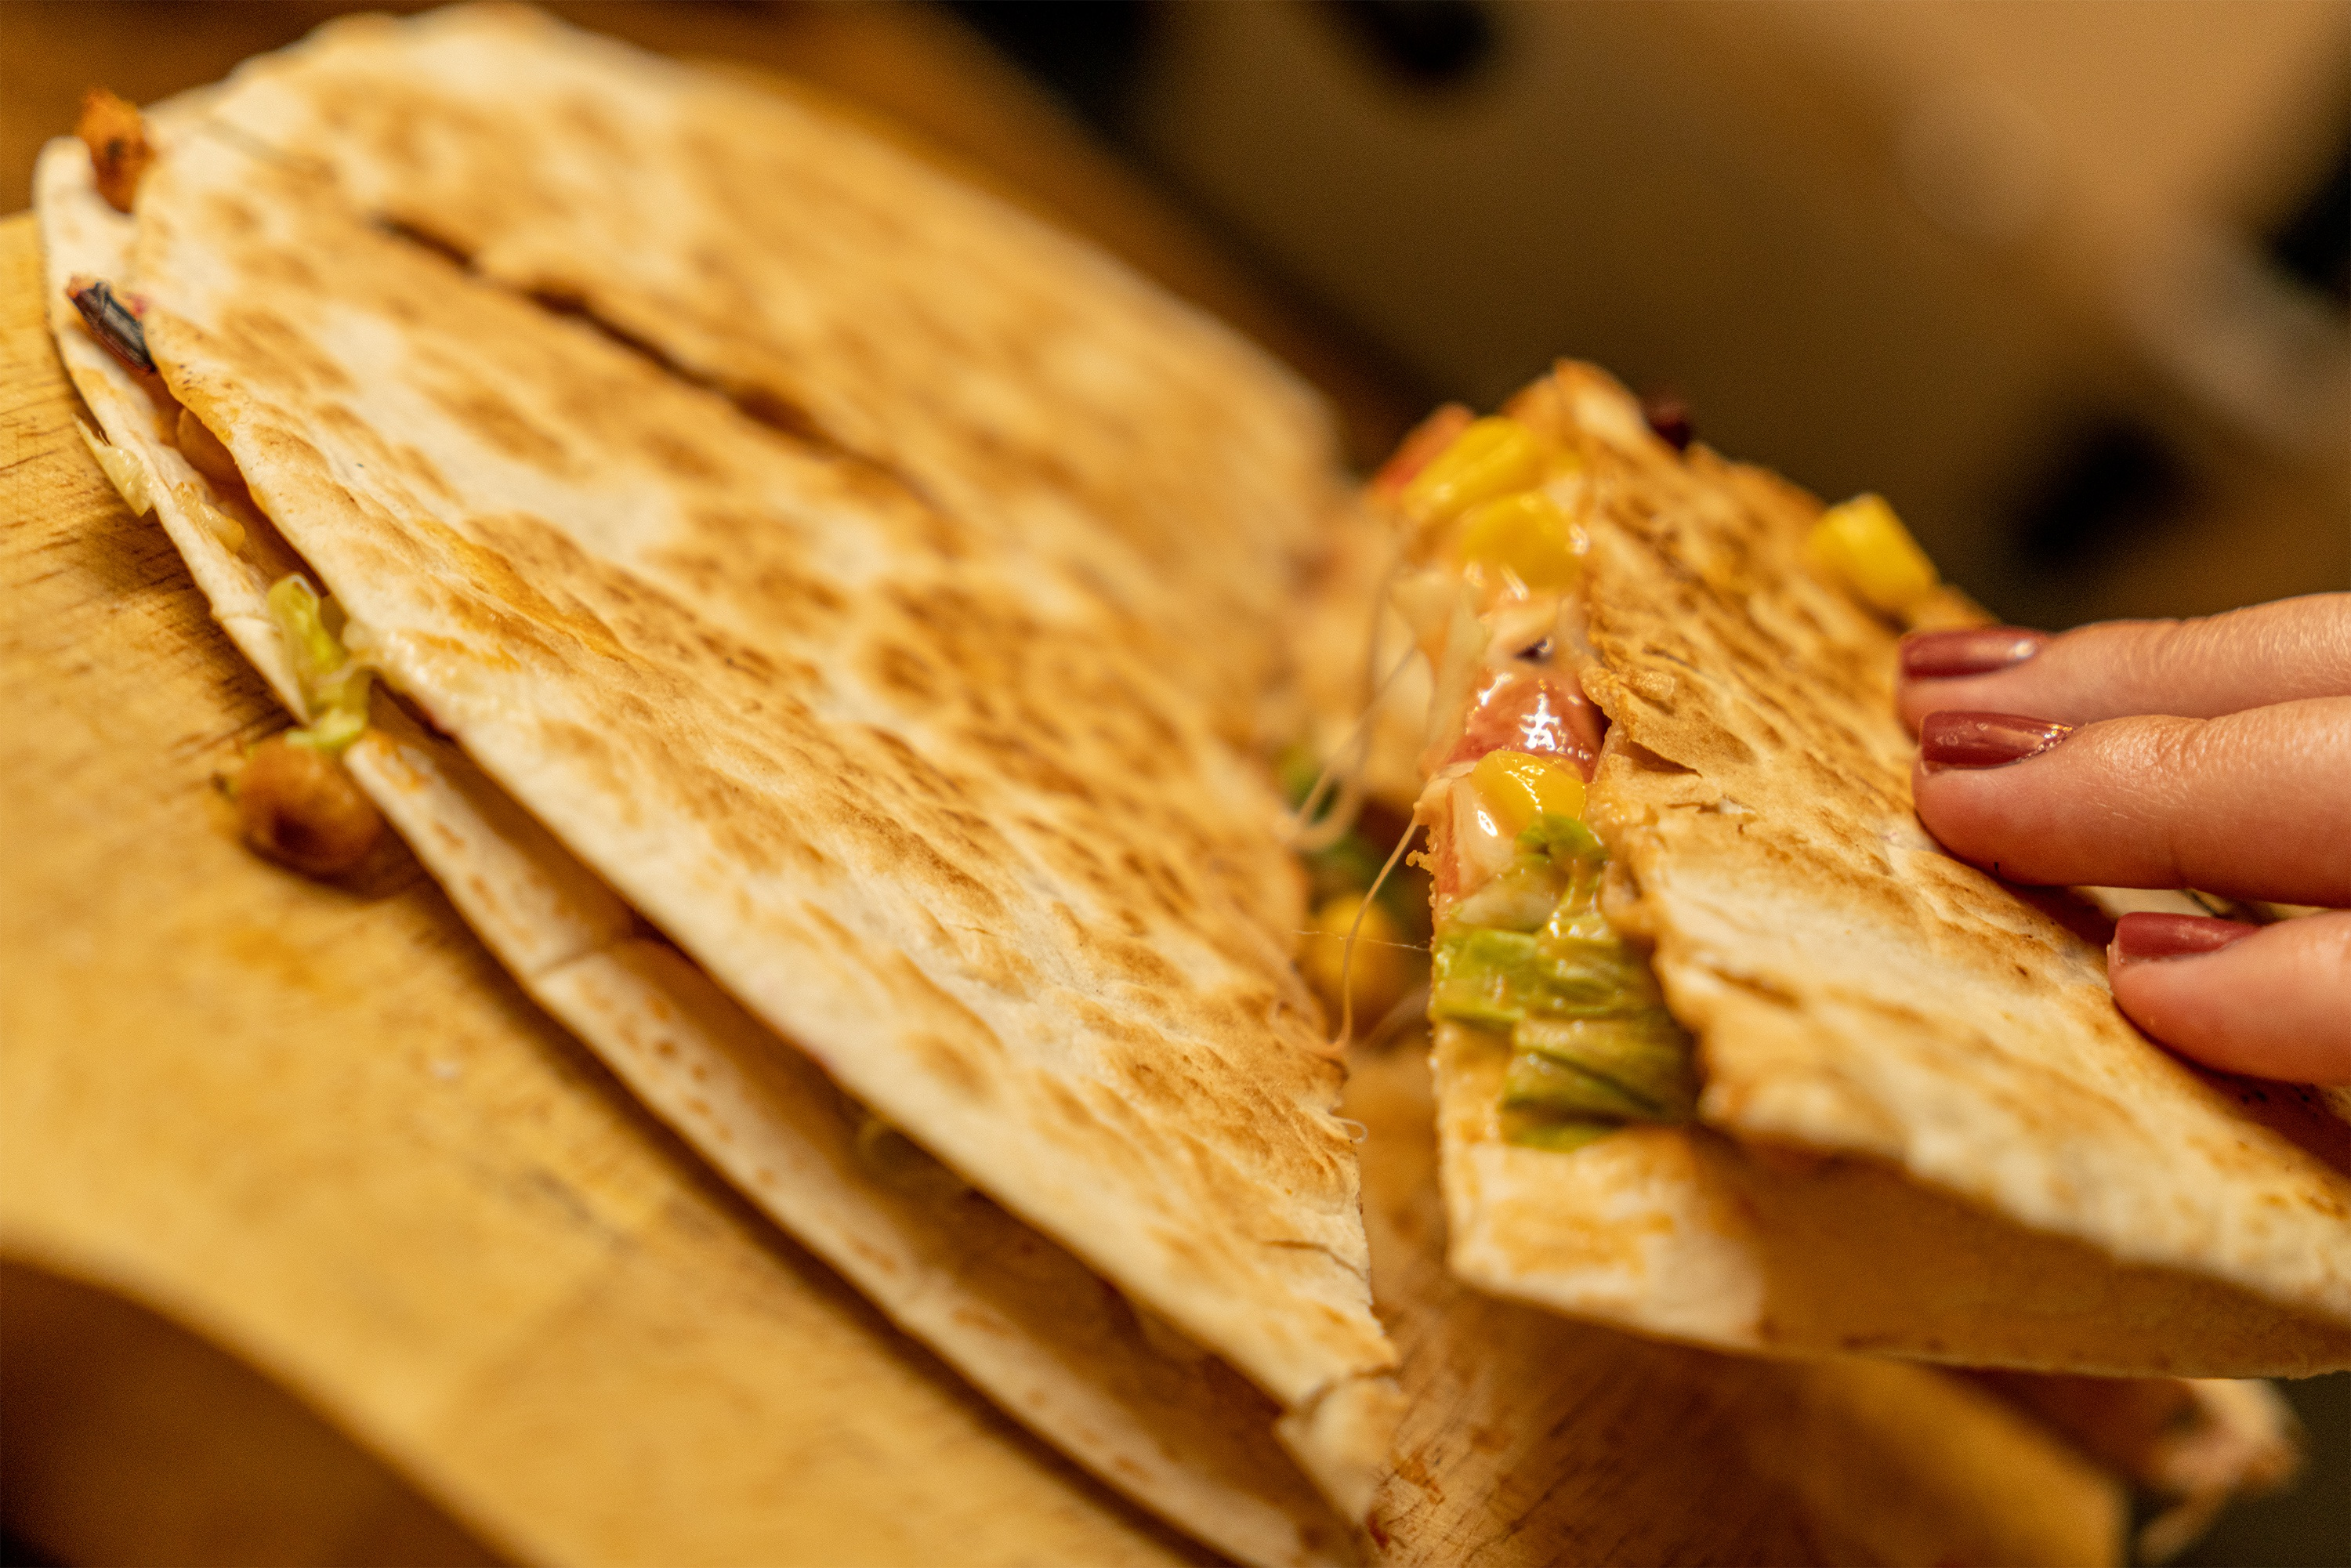 A quesadilla is a tasty way to create something new from leftovers.  (Photo courtesy of Pixabay)